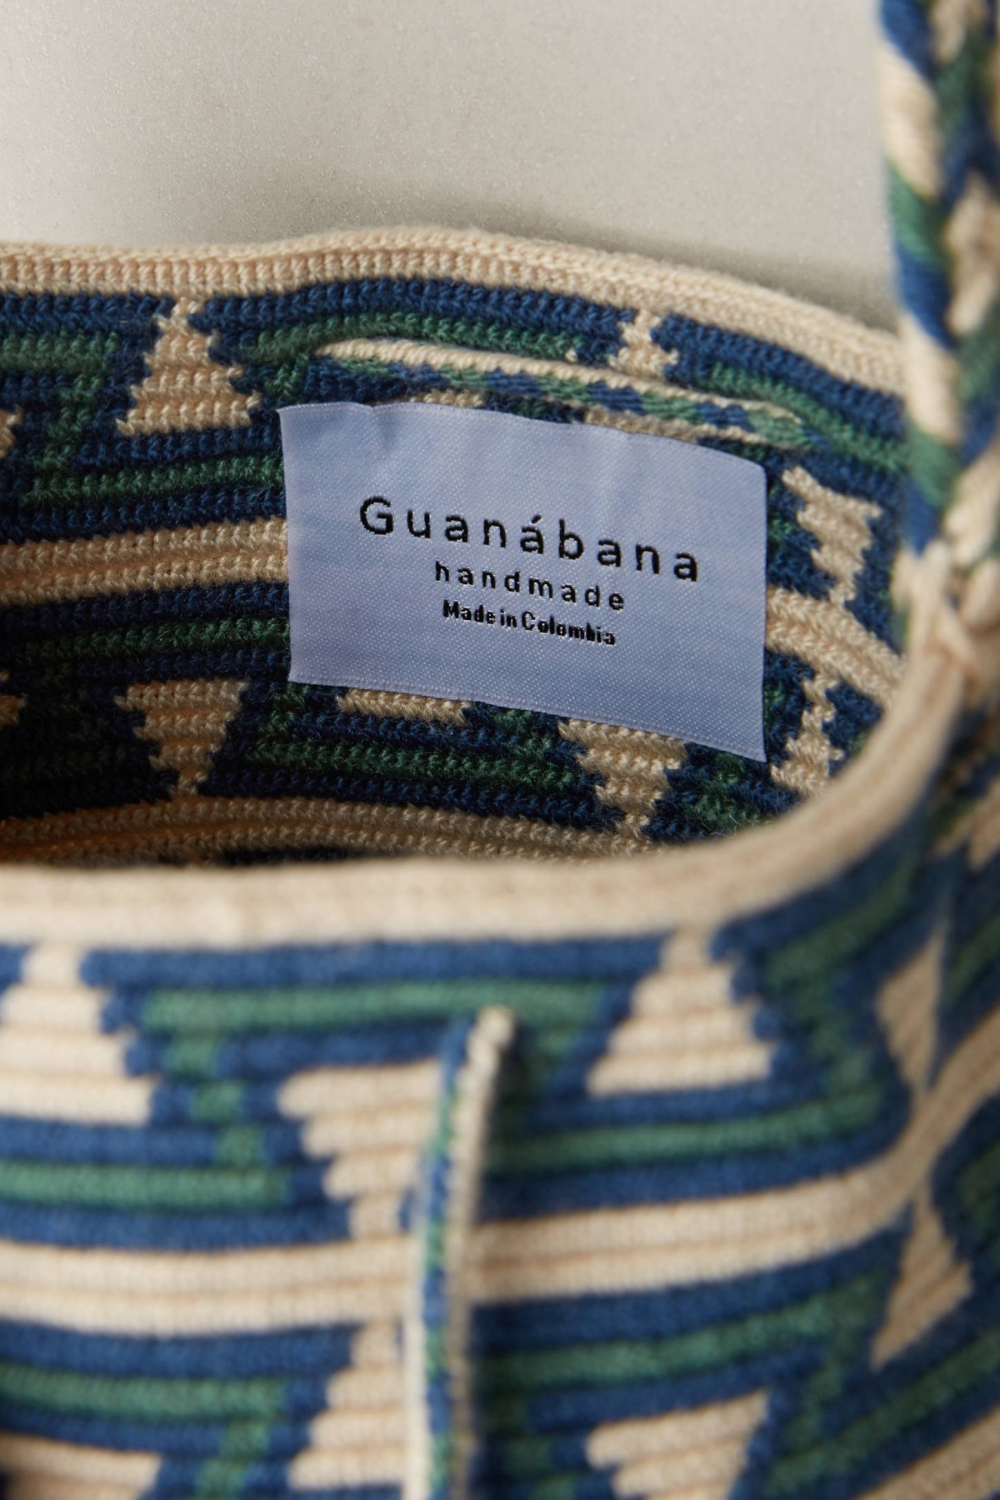 guanabana-blue-highlander-crossbody-bag-product-2-965115562-normal.jpg